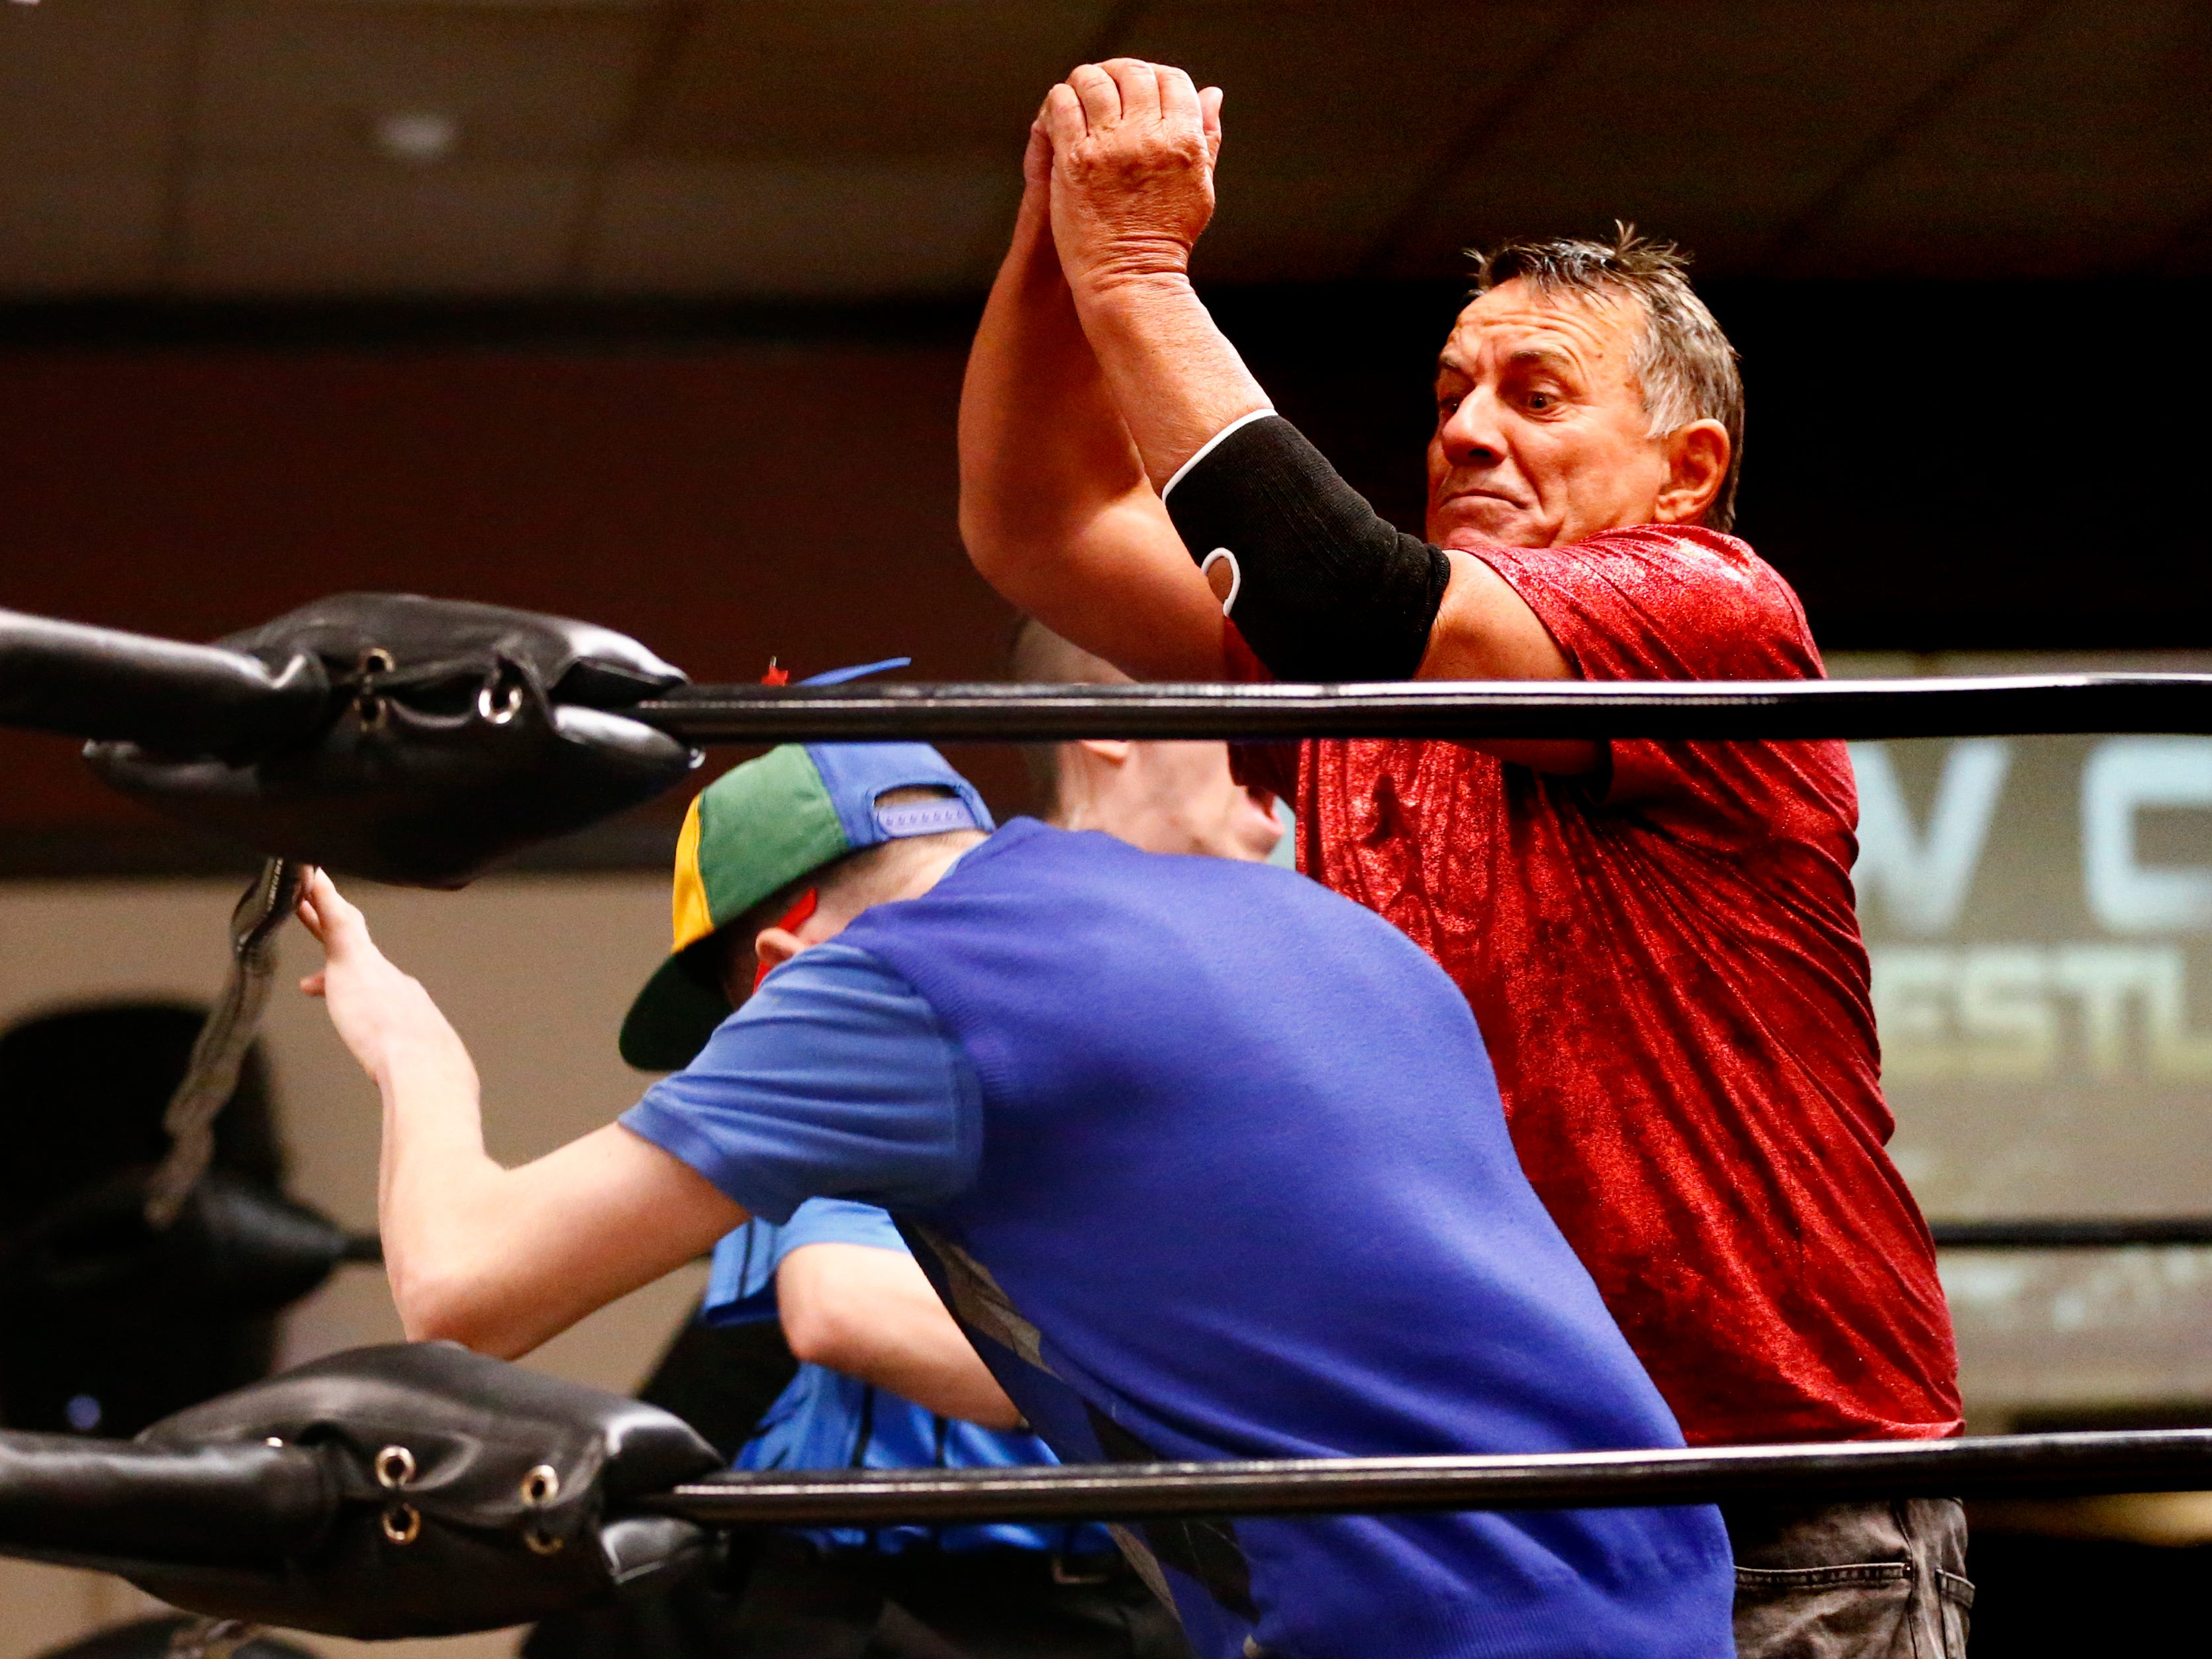 """Angel Armani wastes no time to batter Lou Zhur during the Brew City Wrestling """"Rise To Honor XV- 15 Years of FAN-demonium"""" event at the Waukesha Elks Lodge on Jan. 11 that featured seven matches during the evening."""